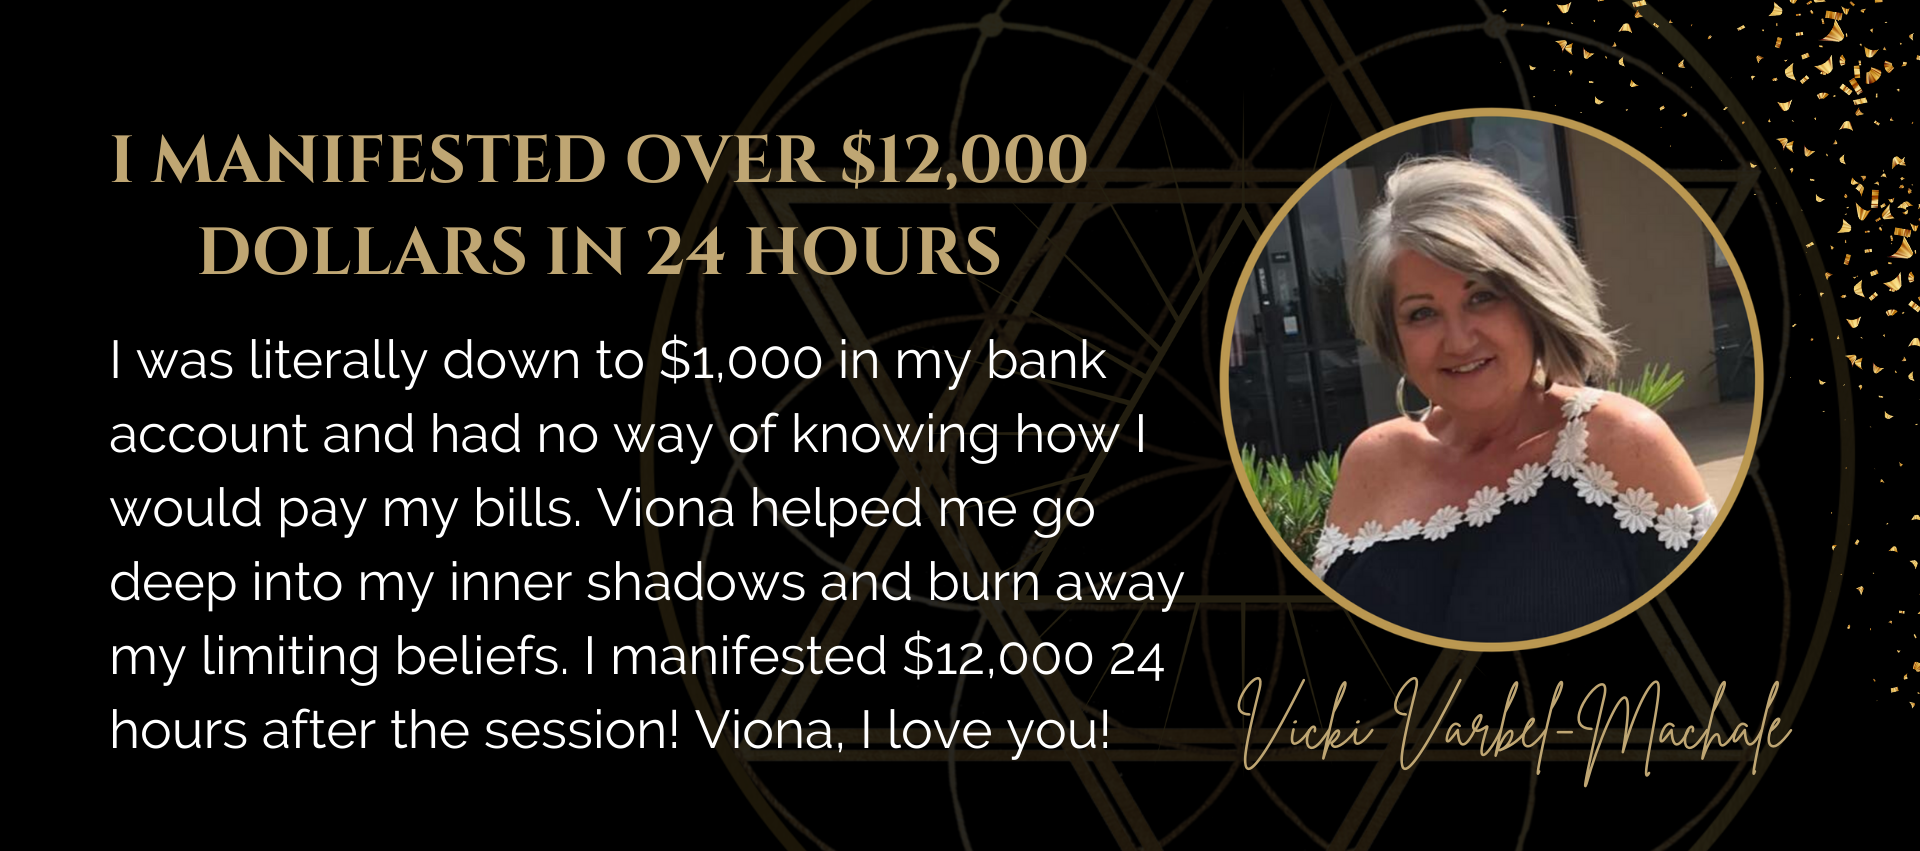 I MANIFESTED ONE AND A HALF MILLION DOLLARS IN 90 DAYS (1)